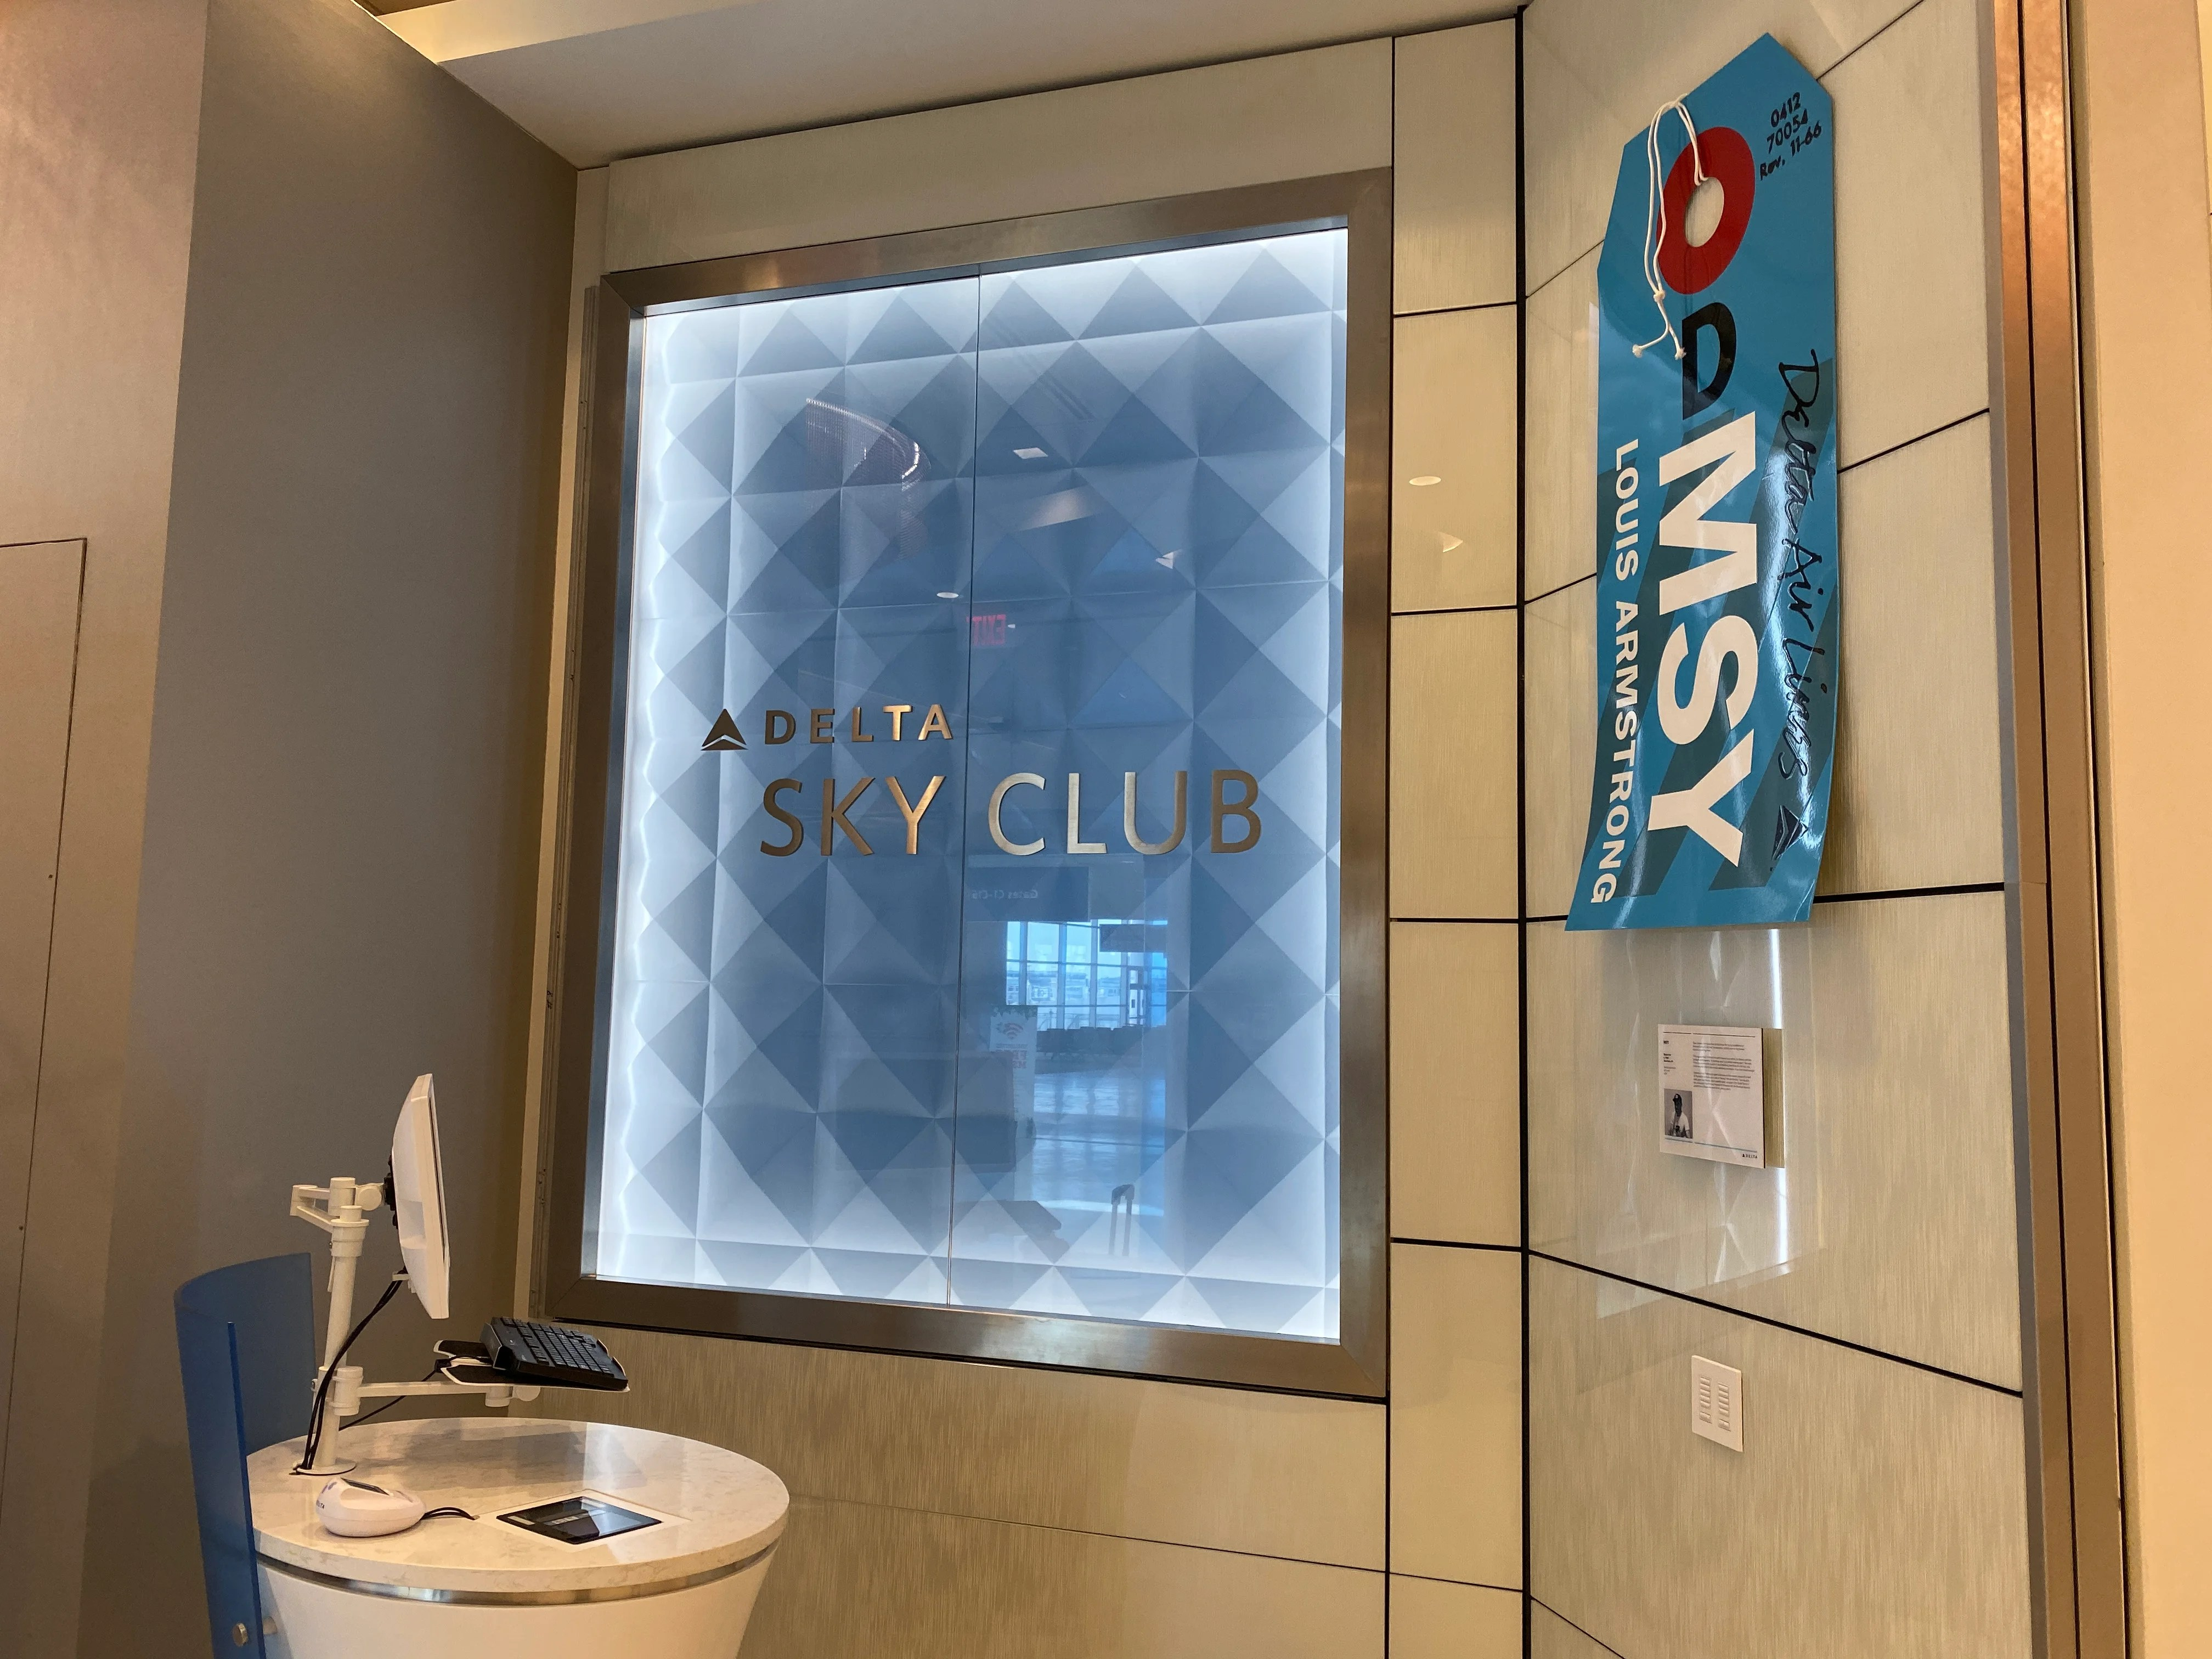 Sneak peek: Delta's stunning new Sky Club at New Orleans' new airport terminal